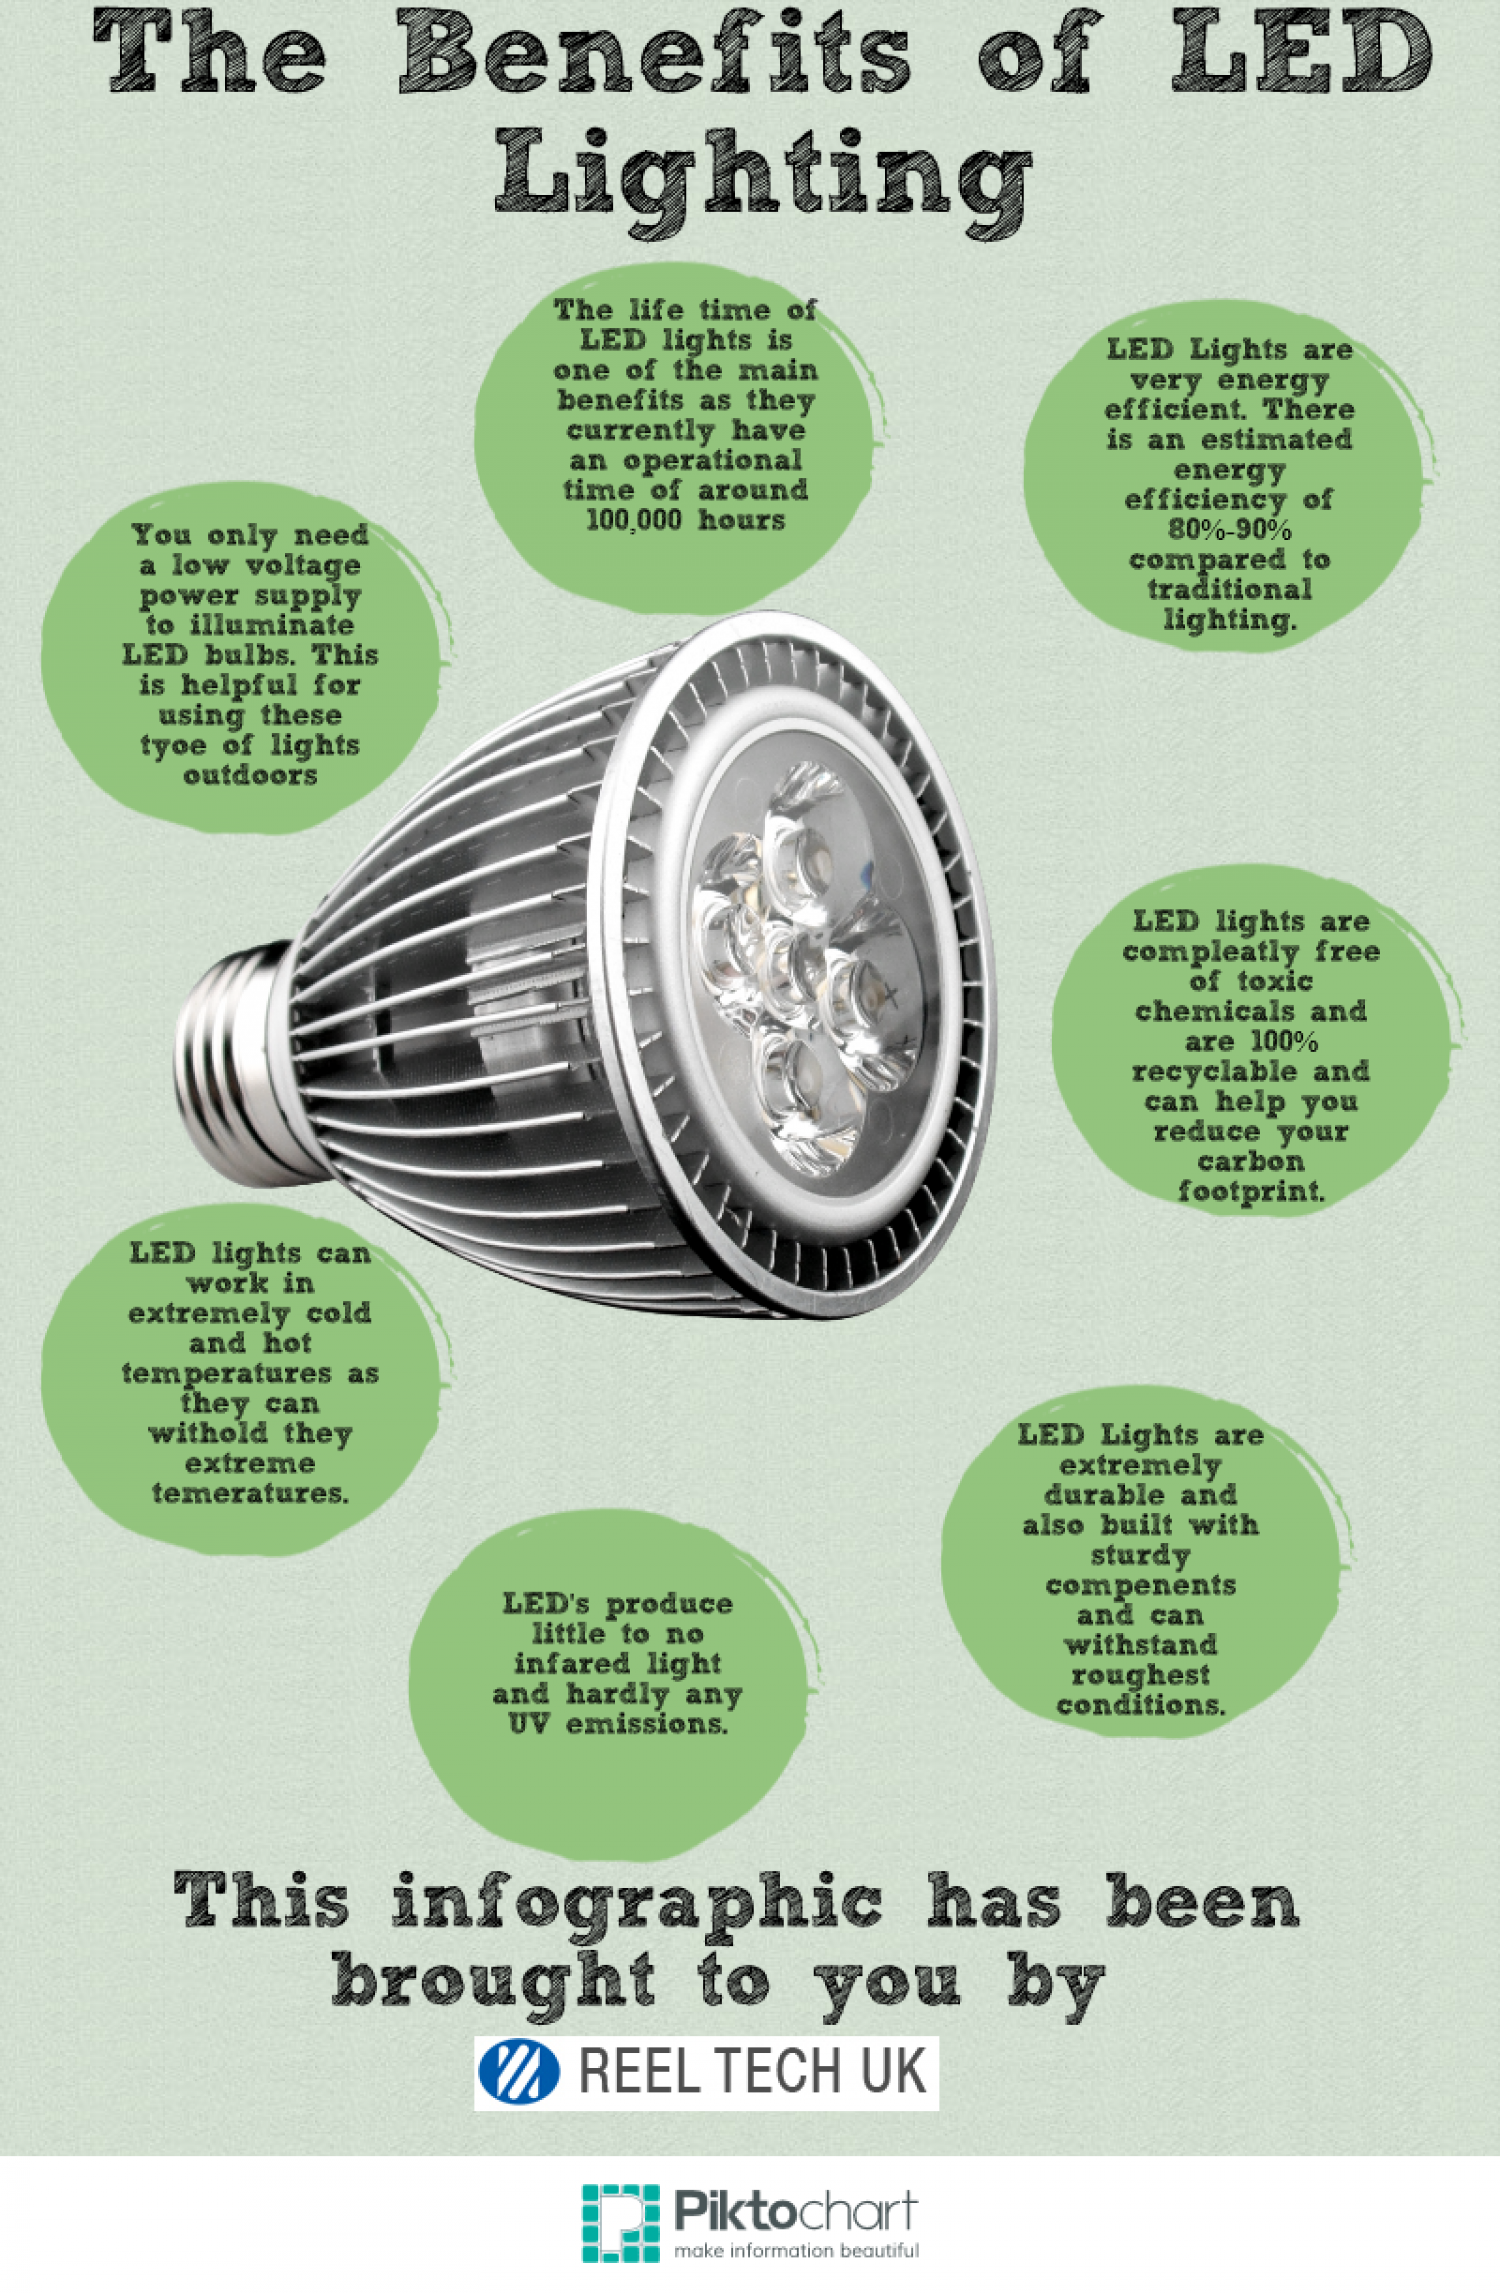 The Benefits of LED Lighting Infographic